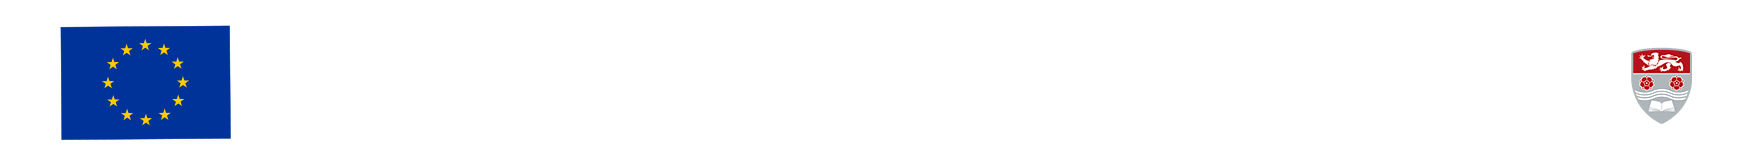 ERDF, Northern Powerhouse and Materials Science Institute logos